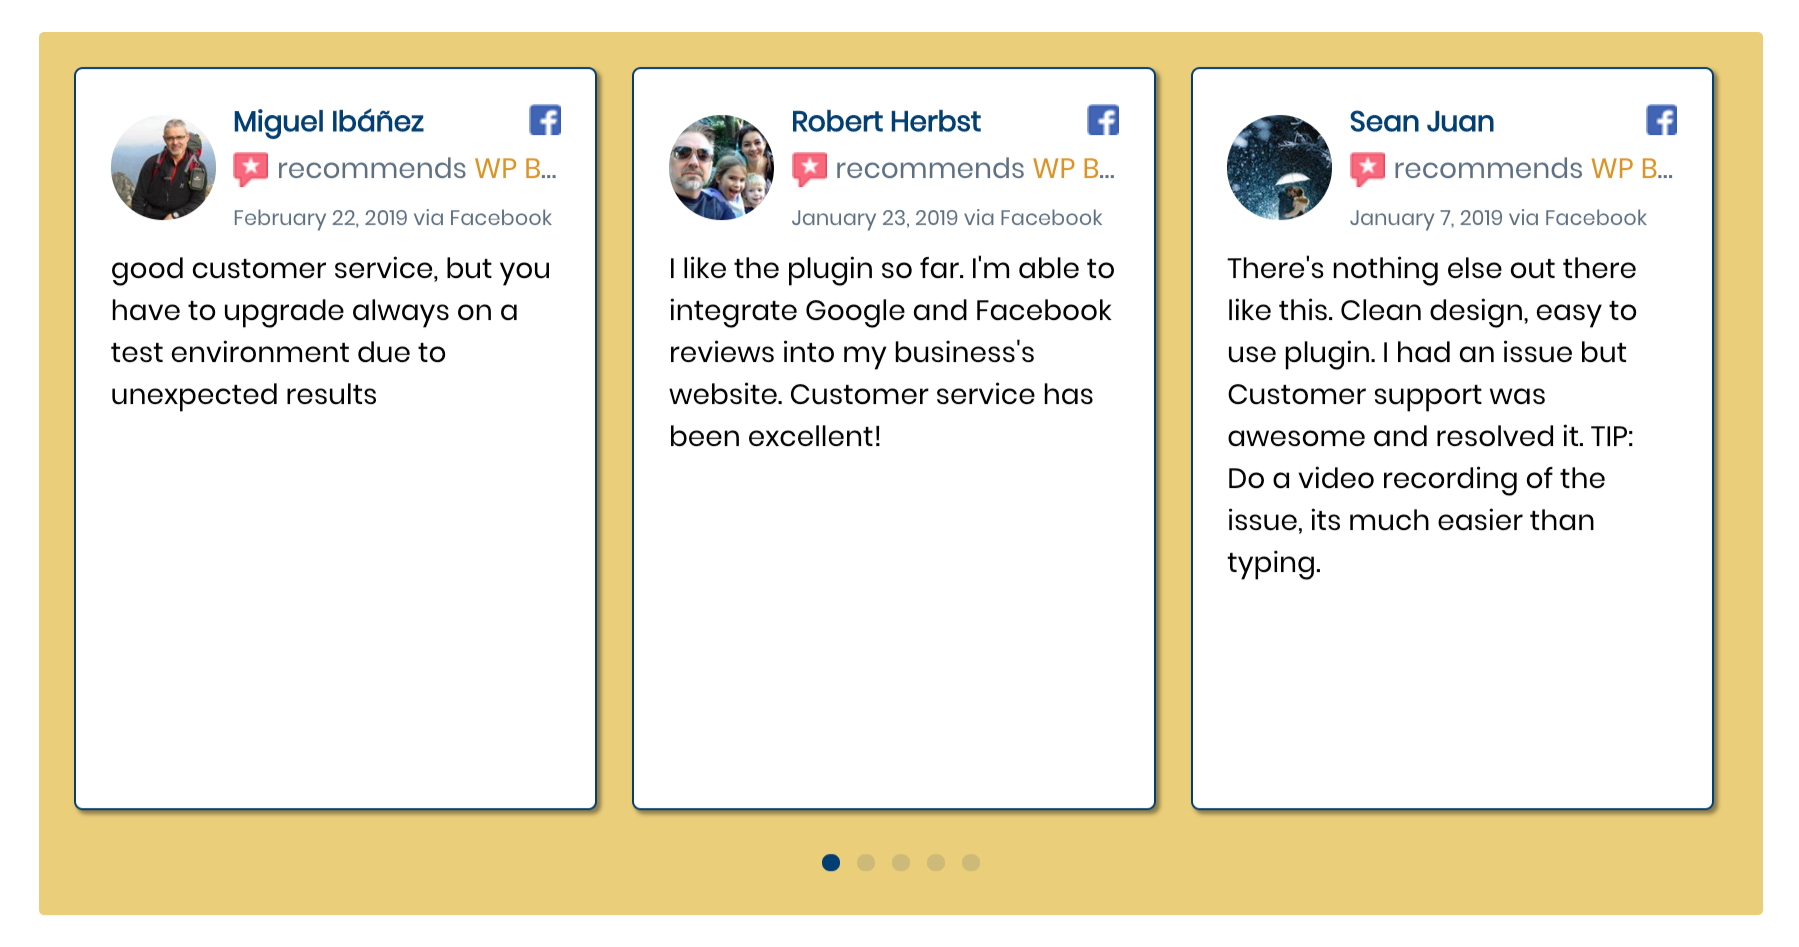 The code snippet creates a reviews carousel that has 3 reviews showing, displaying white review containers with blue borders that cast a shadow on a yellow backdrop. The blue navigation bullets are the same blue as the reviewer name.